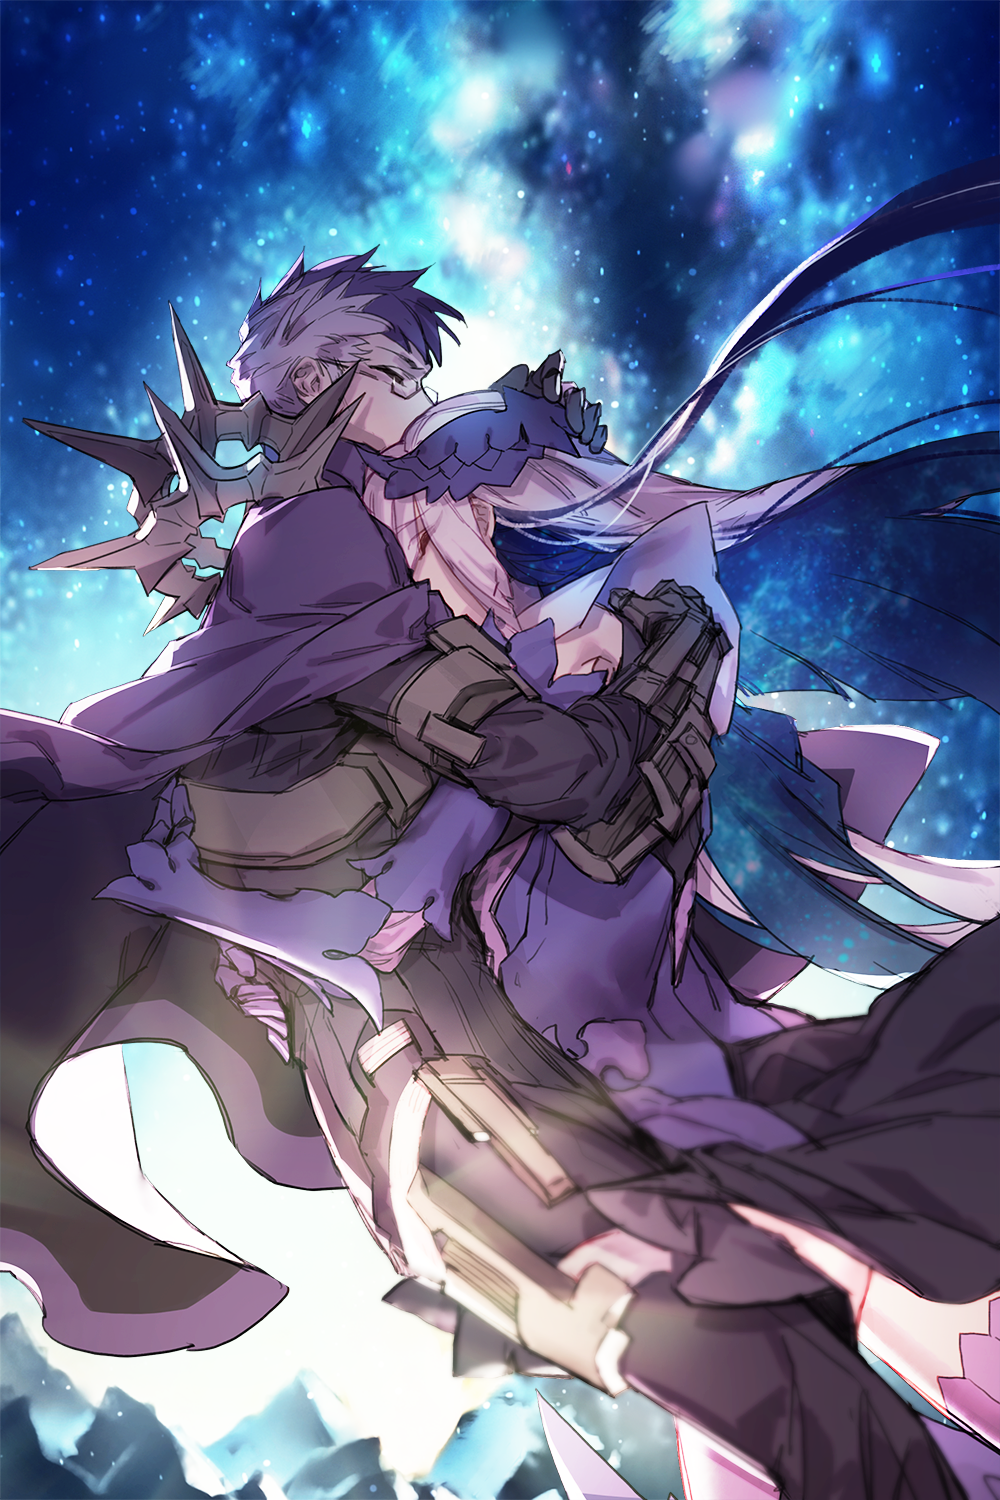 1boy 1girl armor black_skirt brynhildr_(fate) cape closed_eyes fate/grand_order fate/prototype fate/prototype:_fragments_of_blue_and_silver fate_(series) glasses highres hug krab long_hair multicolored_hair night night_sky purple_cape purple_hair sigurd_(fate/grand_order) silver_hair skirt sky star_(sky) starry_sky two-tone_hair very_long_hair white_hair